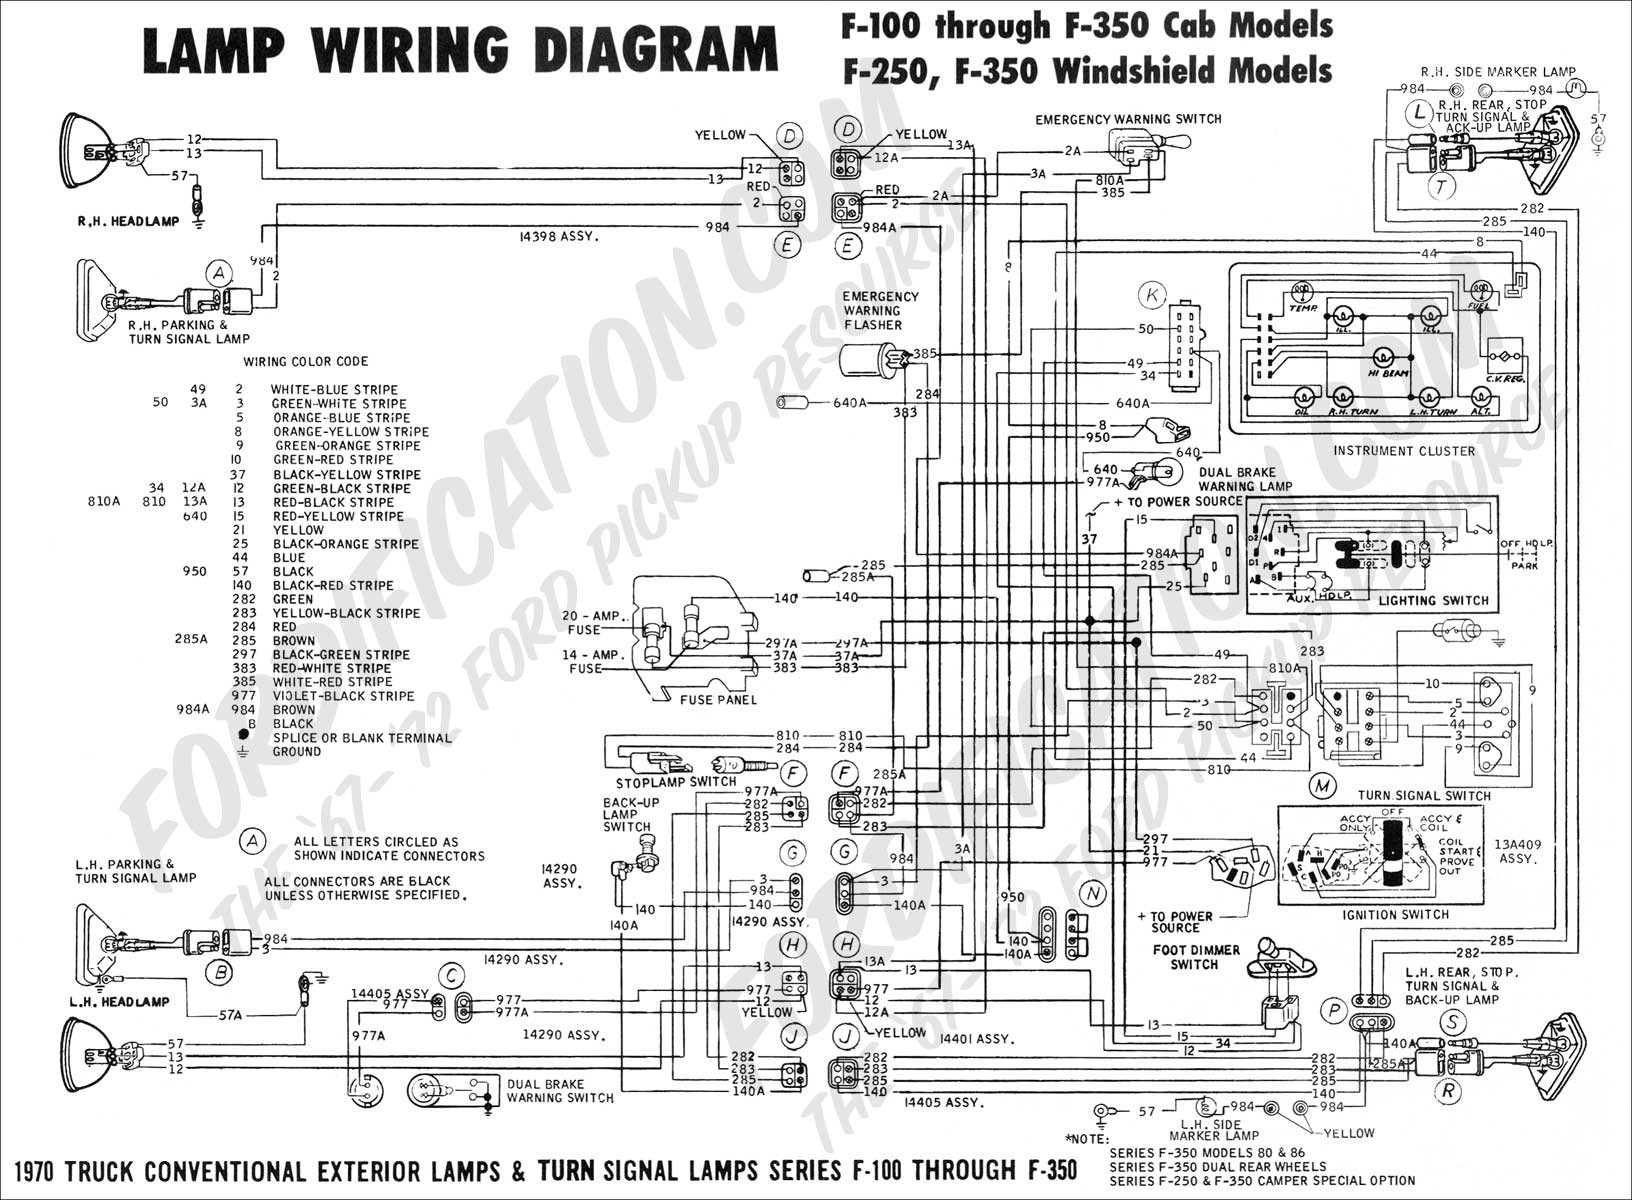 1996 Ford Taurus Engine Diagram Wiring Harness Series 1 Land Rover Discovery F 250 Of